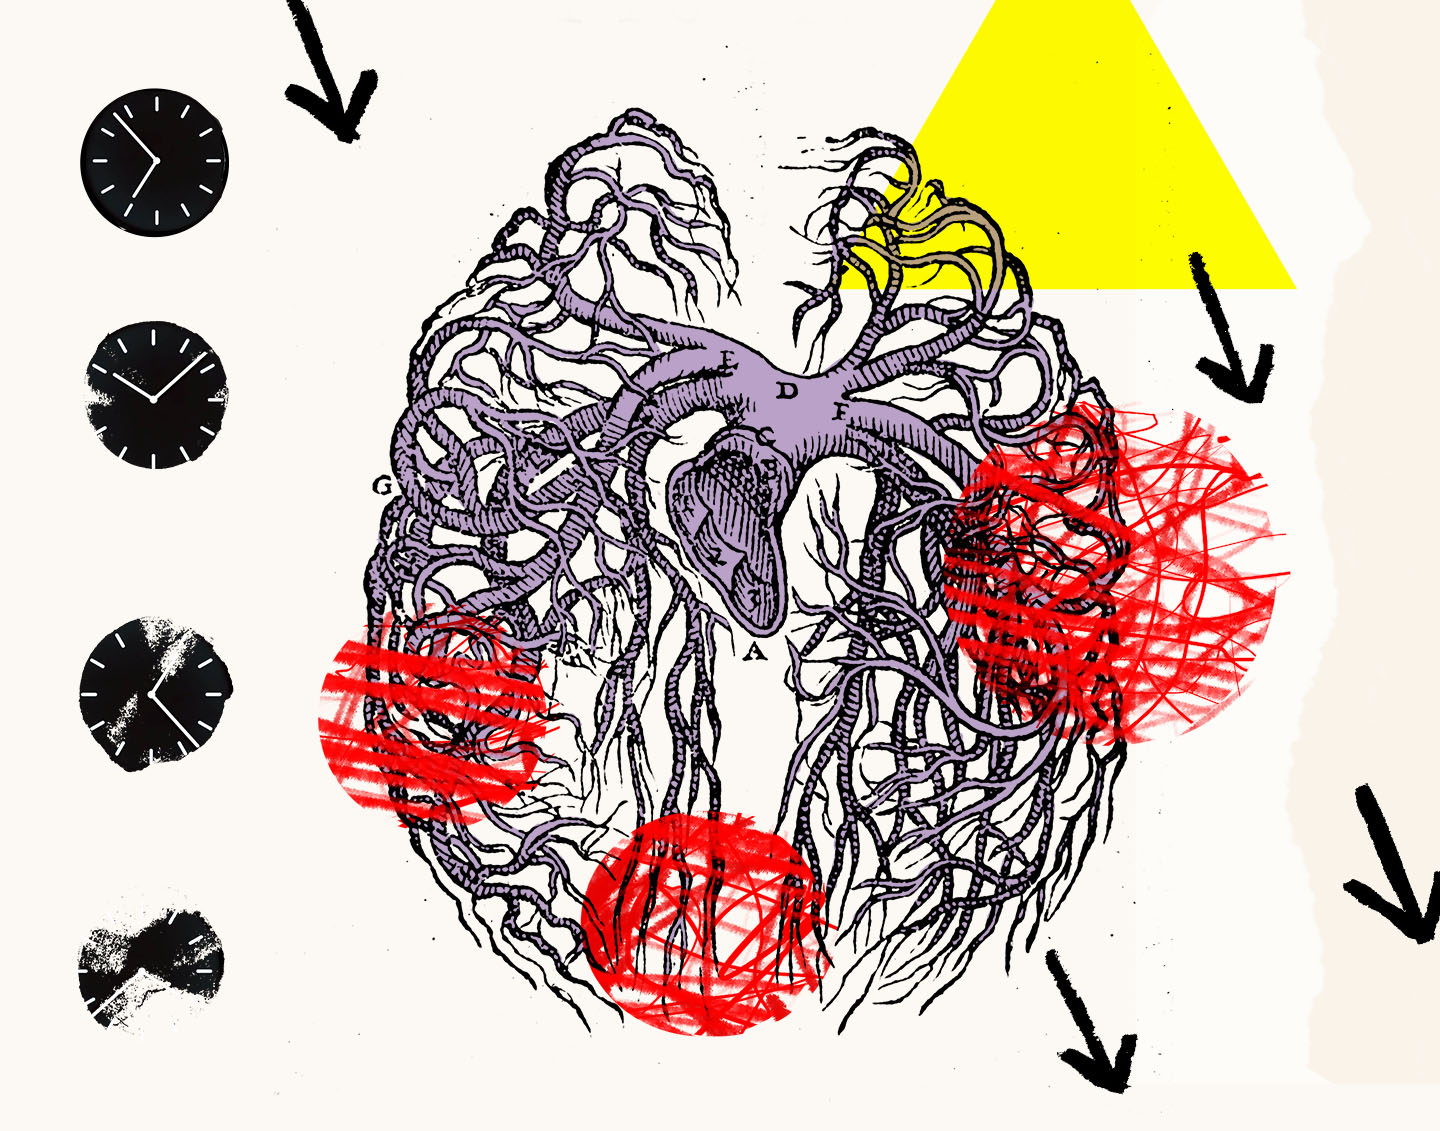 A collage with a clock, vascular system, and inflammation.